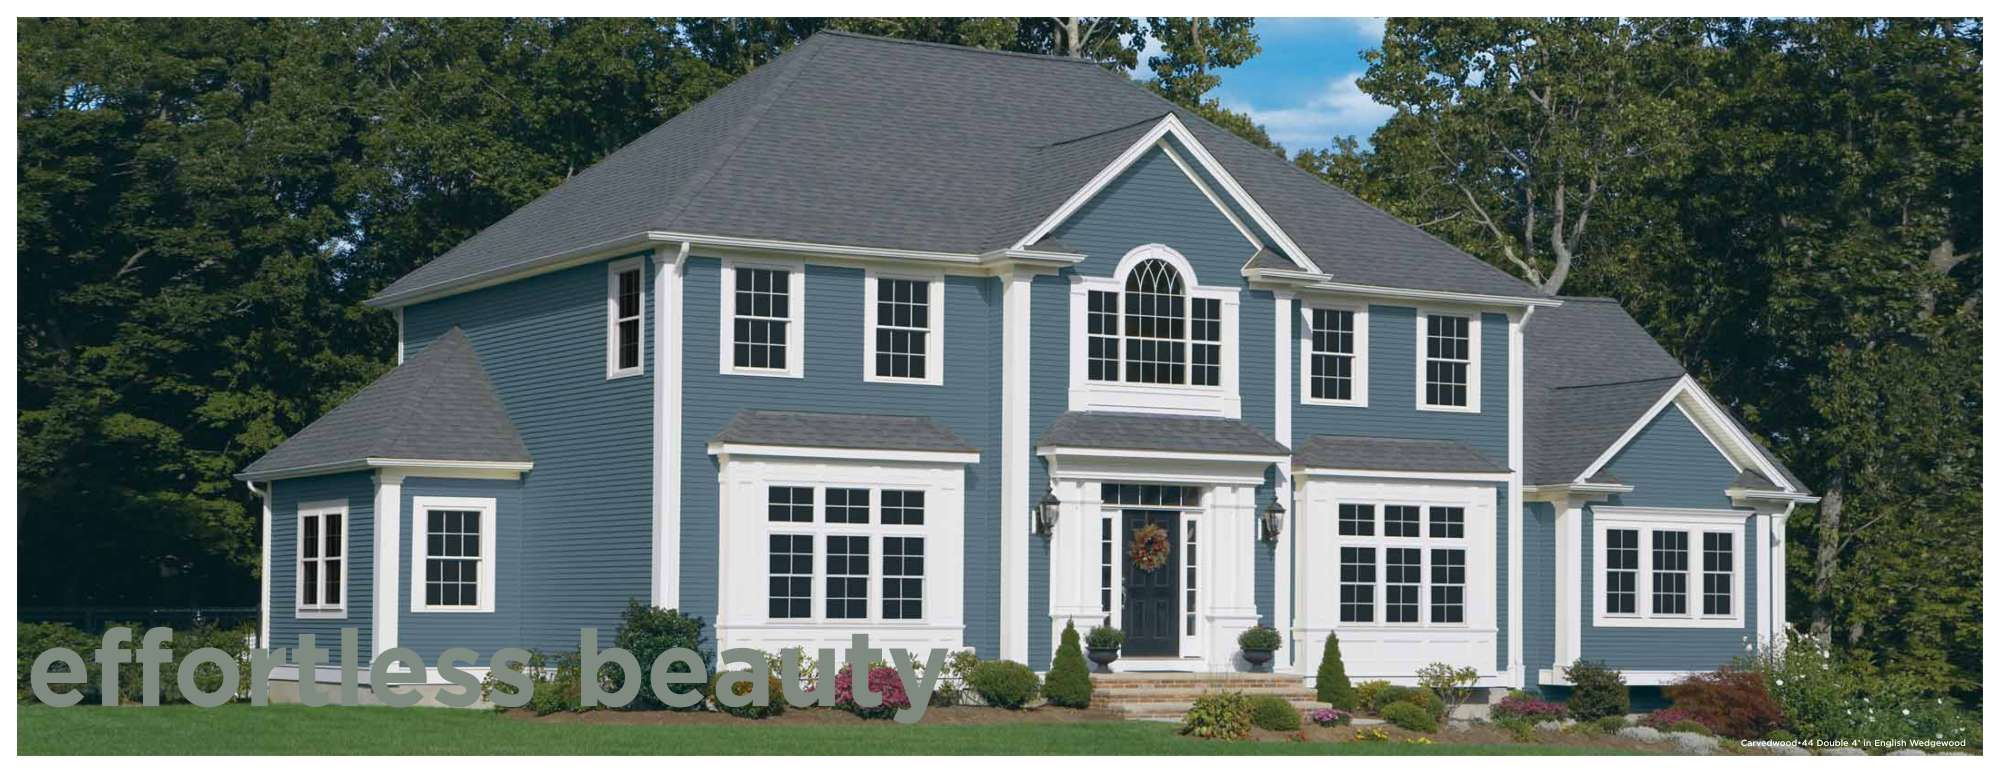 English Wedgewood Siding Ideas House Siding Blue